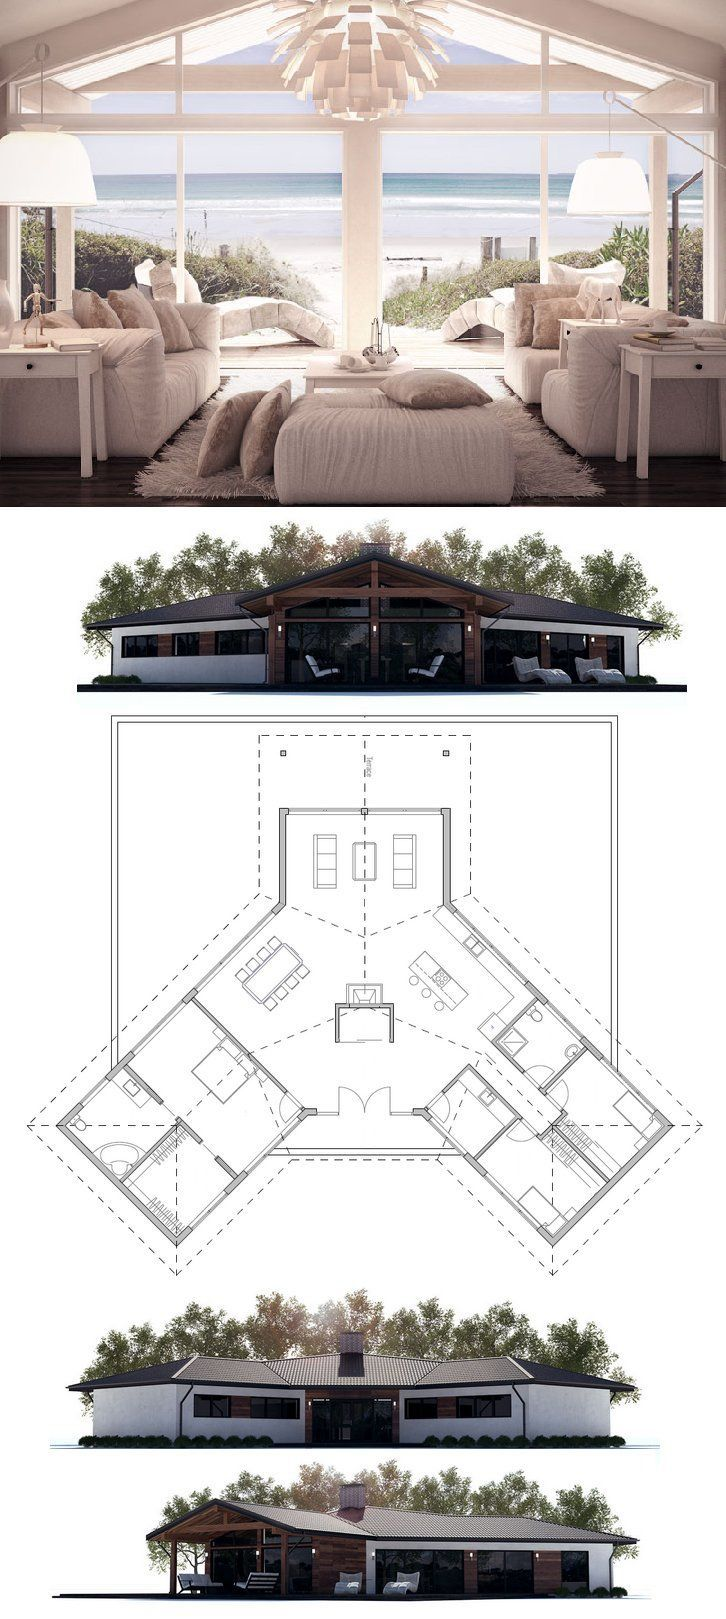 Protagonismo a la vista del living Who Else Wants Simple Step-By-Step Plans To Design And Build A Container Home From Scratch?  http://build-acontainerhome.blogspot.com?prod=wnSSWdLX